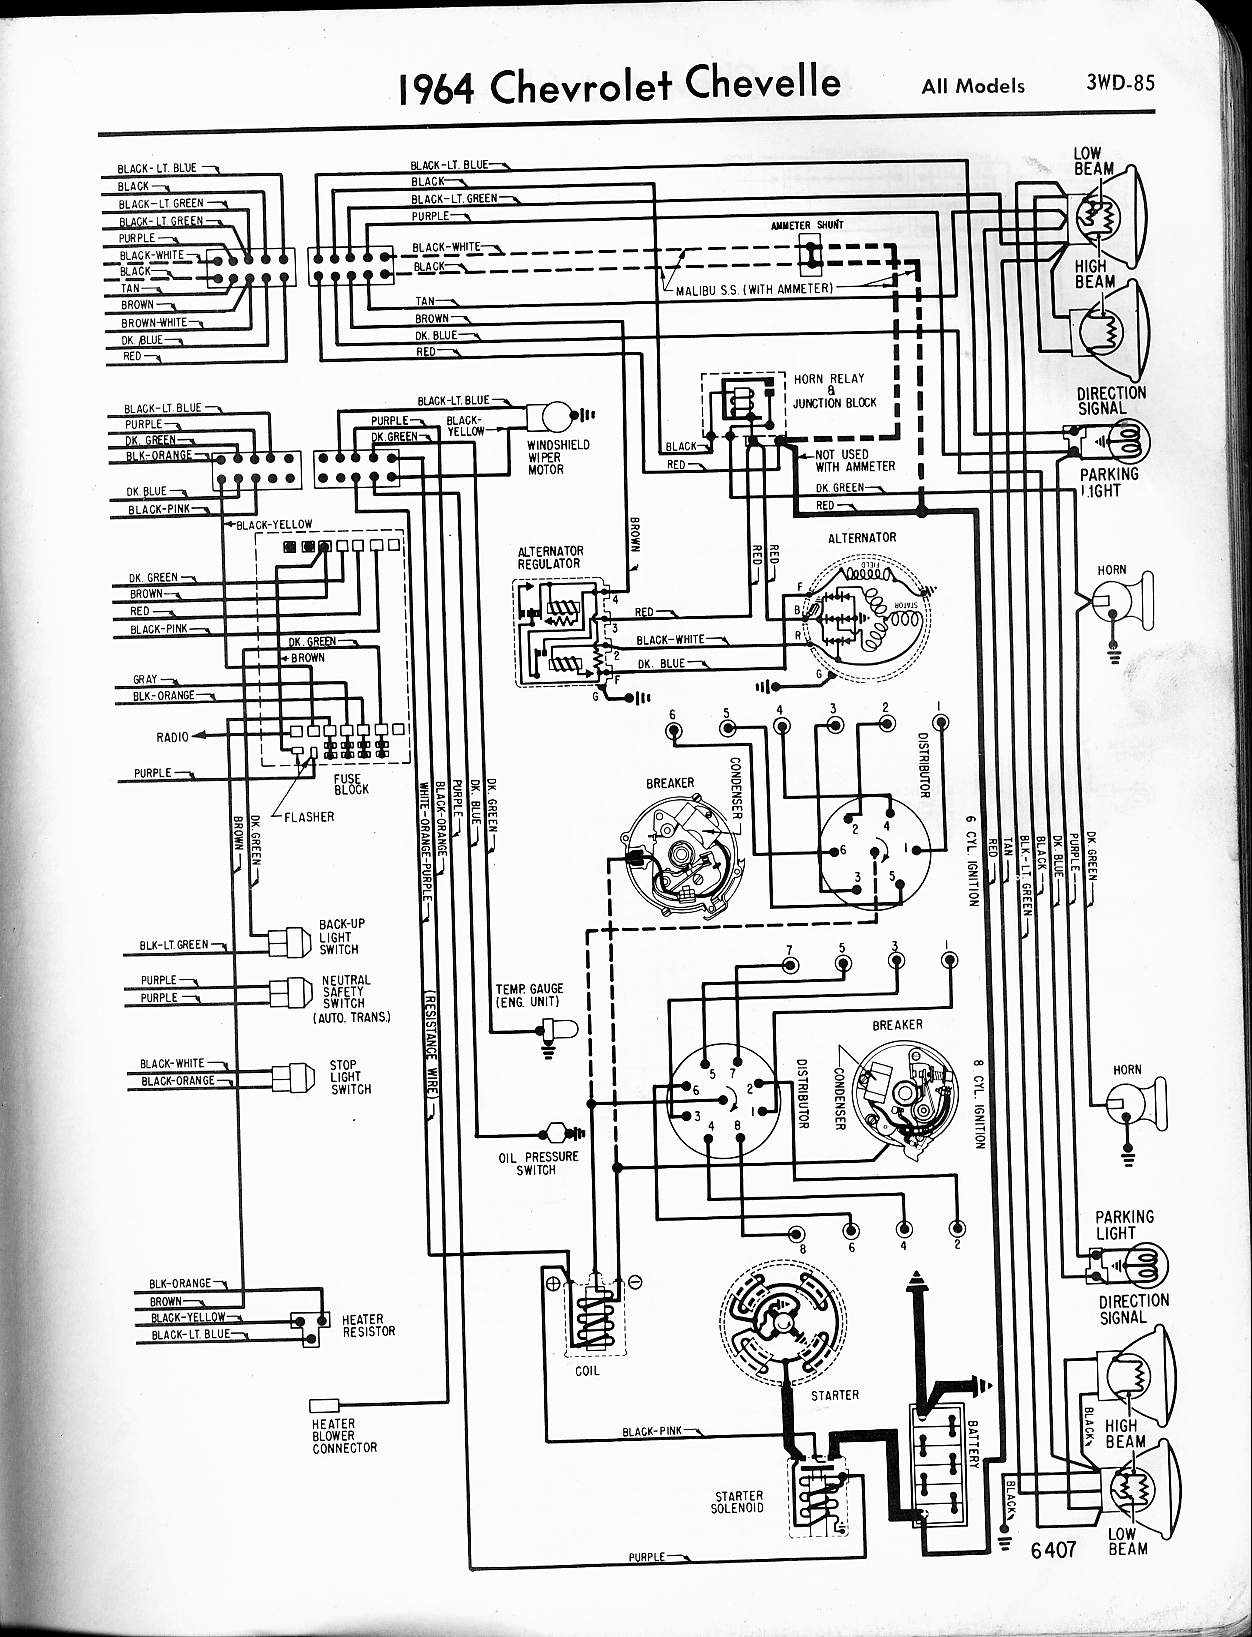 1964 Chevrolet C10 Gauge Wiring Free Diagram For You 1953 65 Chevy Blogs Rh 9 6 1 Restaurant Freinsheimer Hof De 1961